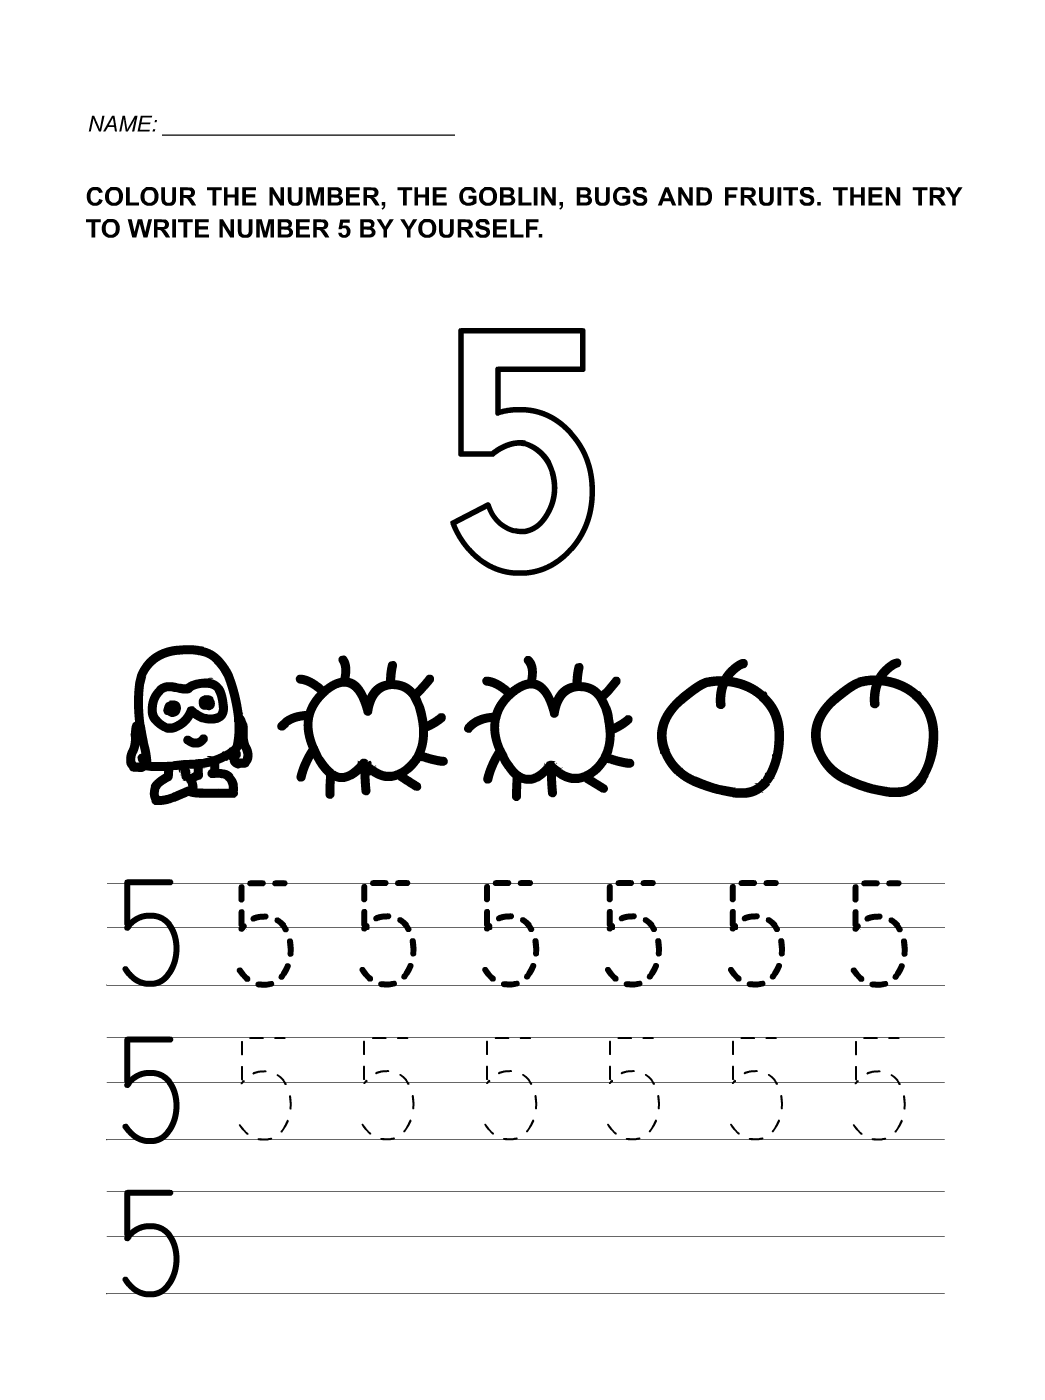 worksheet Learning Numbers Worksheets number 5 worksheets for children activity shelter kids that you can print and use as the media of learning your children